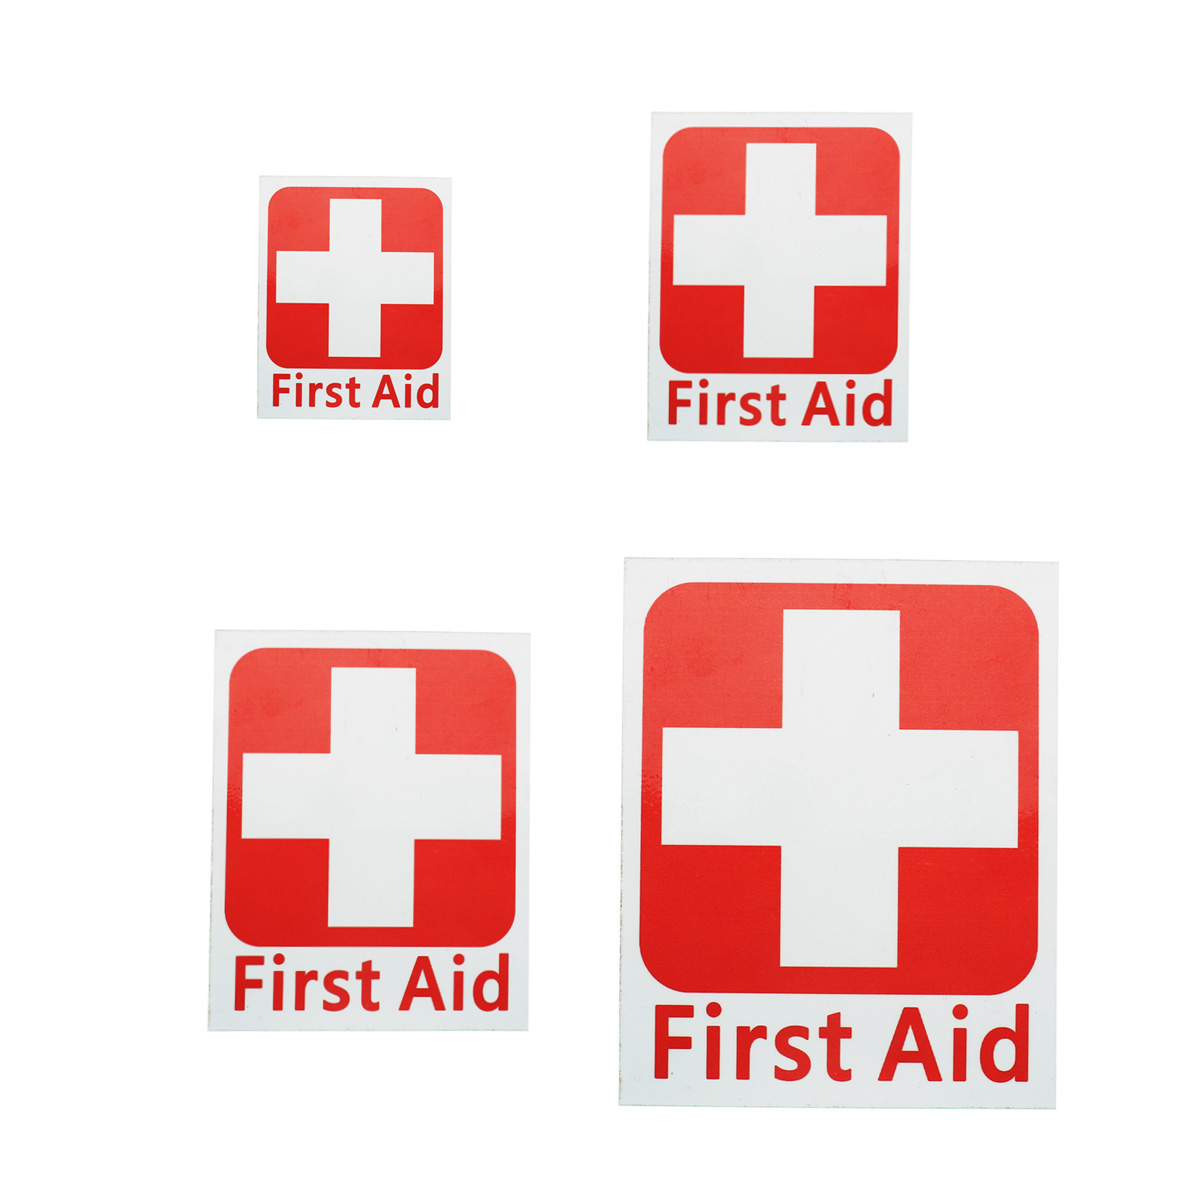 NEW Safurance 4 Size FIRST AID Vinyl Sticker Label Waterproof Signs Red Cross Health Safety Emergency Kits Warning signs page 4